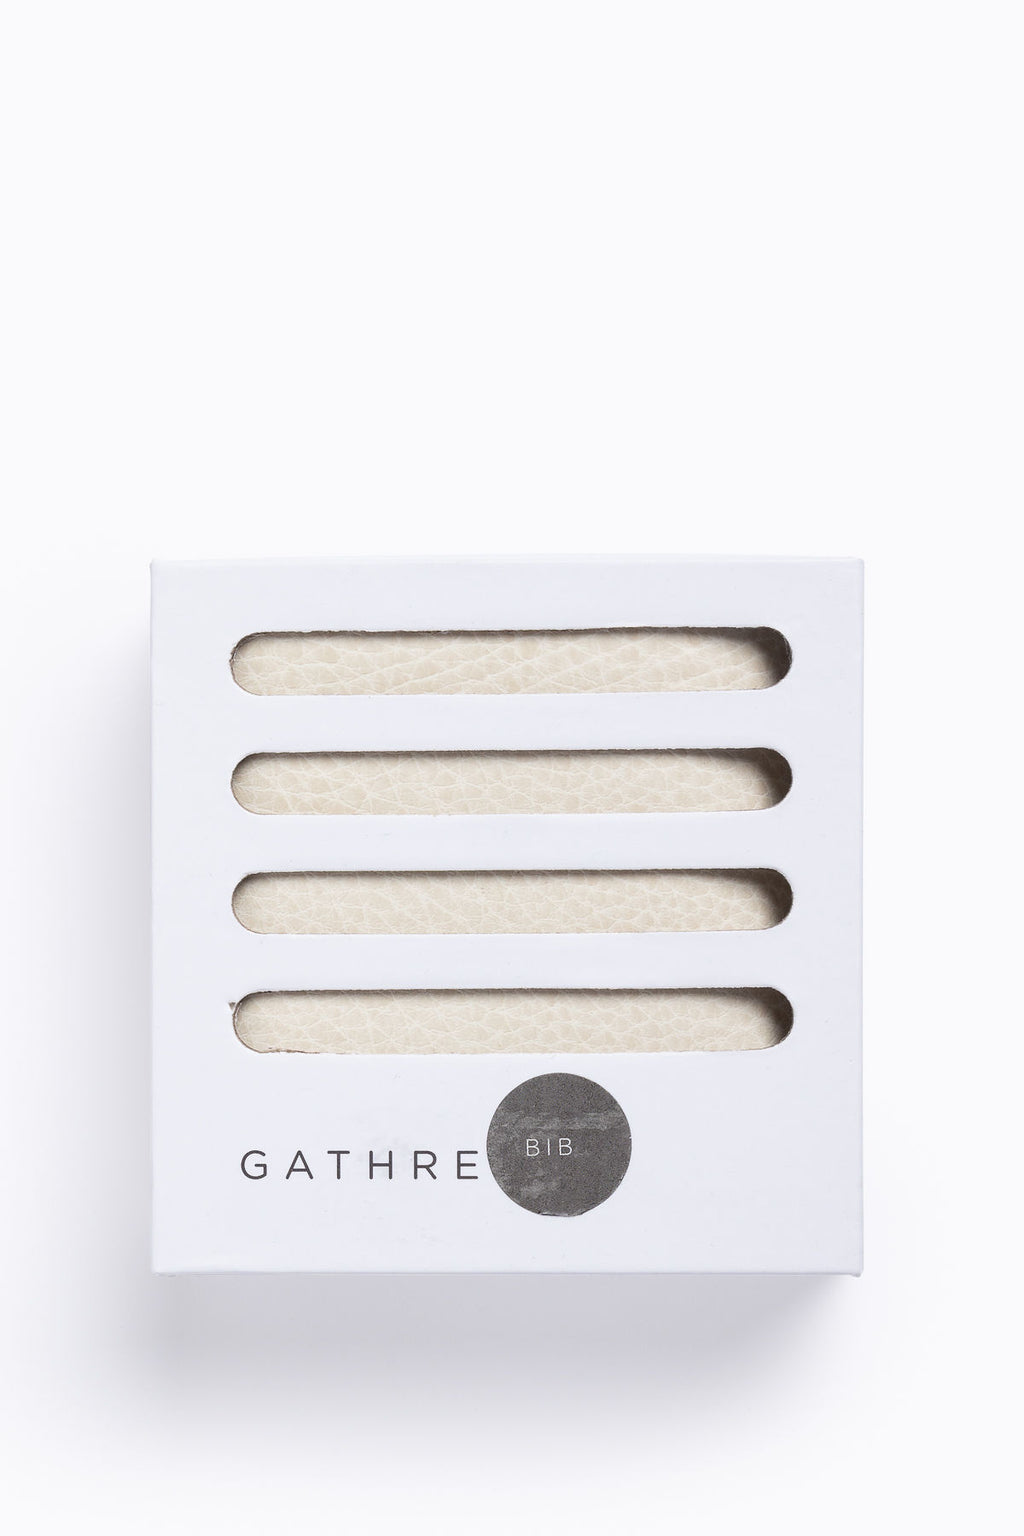 HOME: Gathre Bib in Blanc